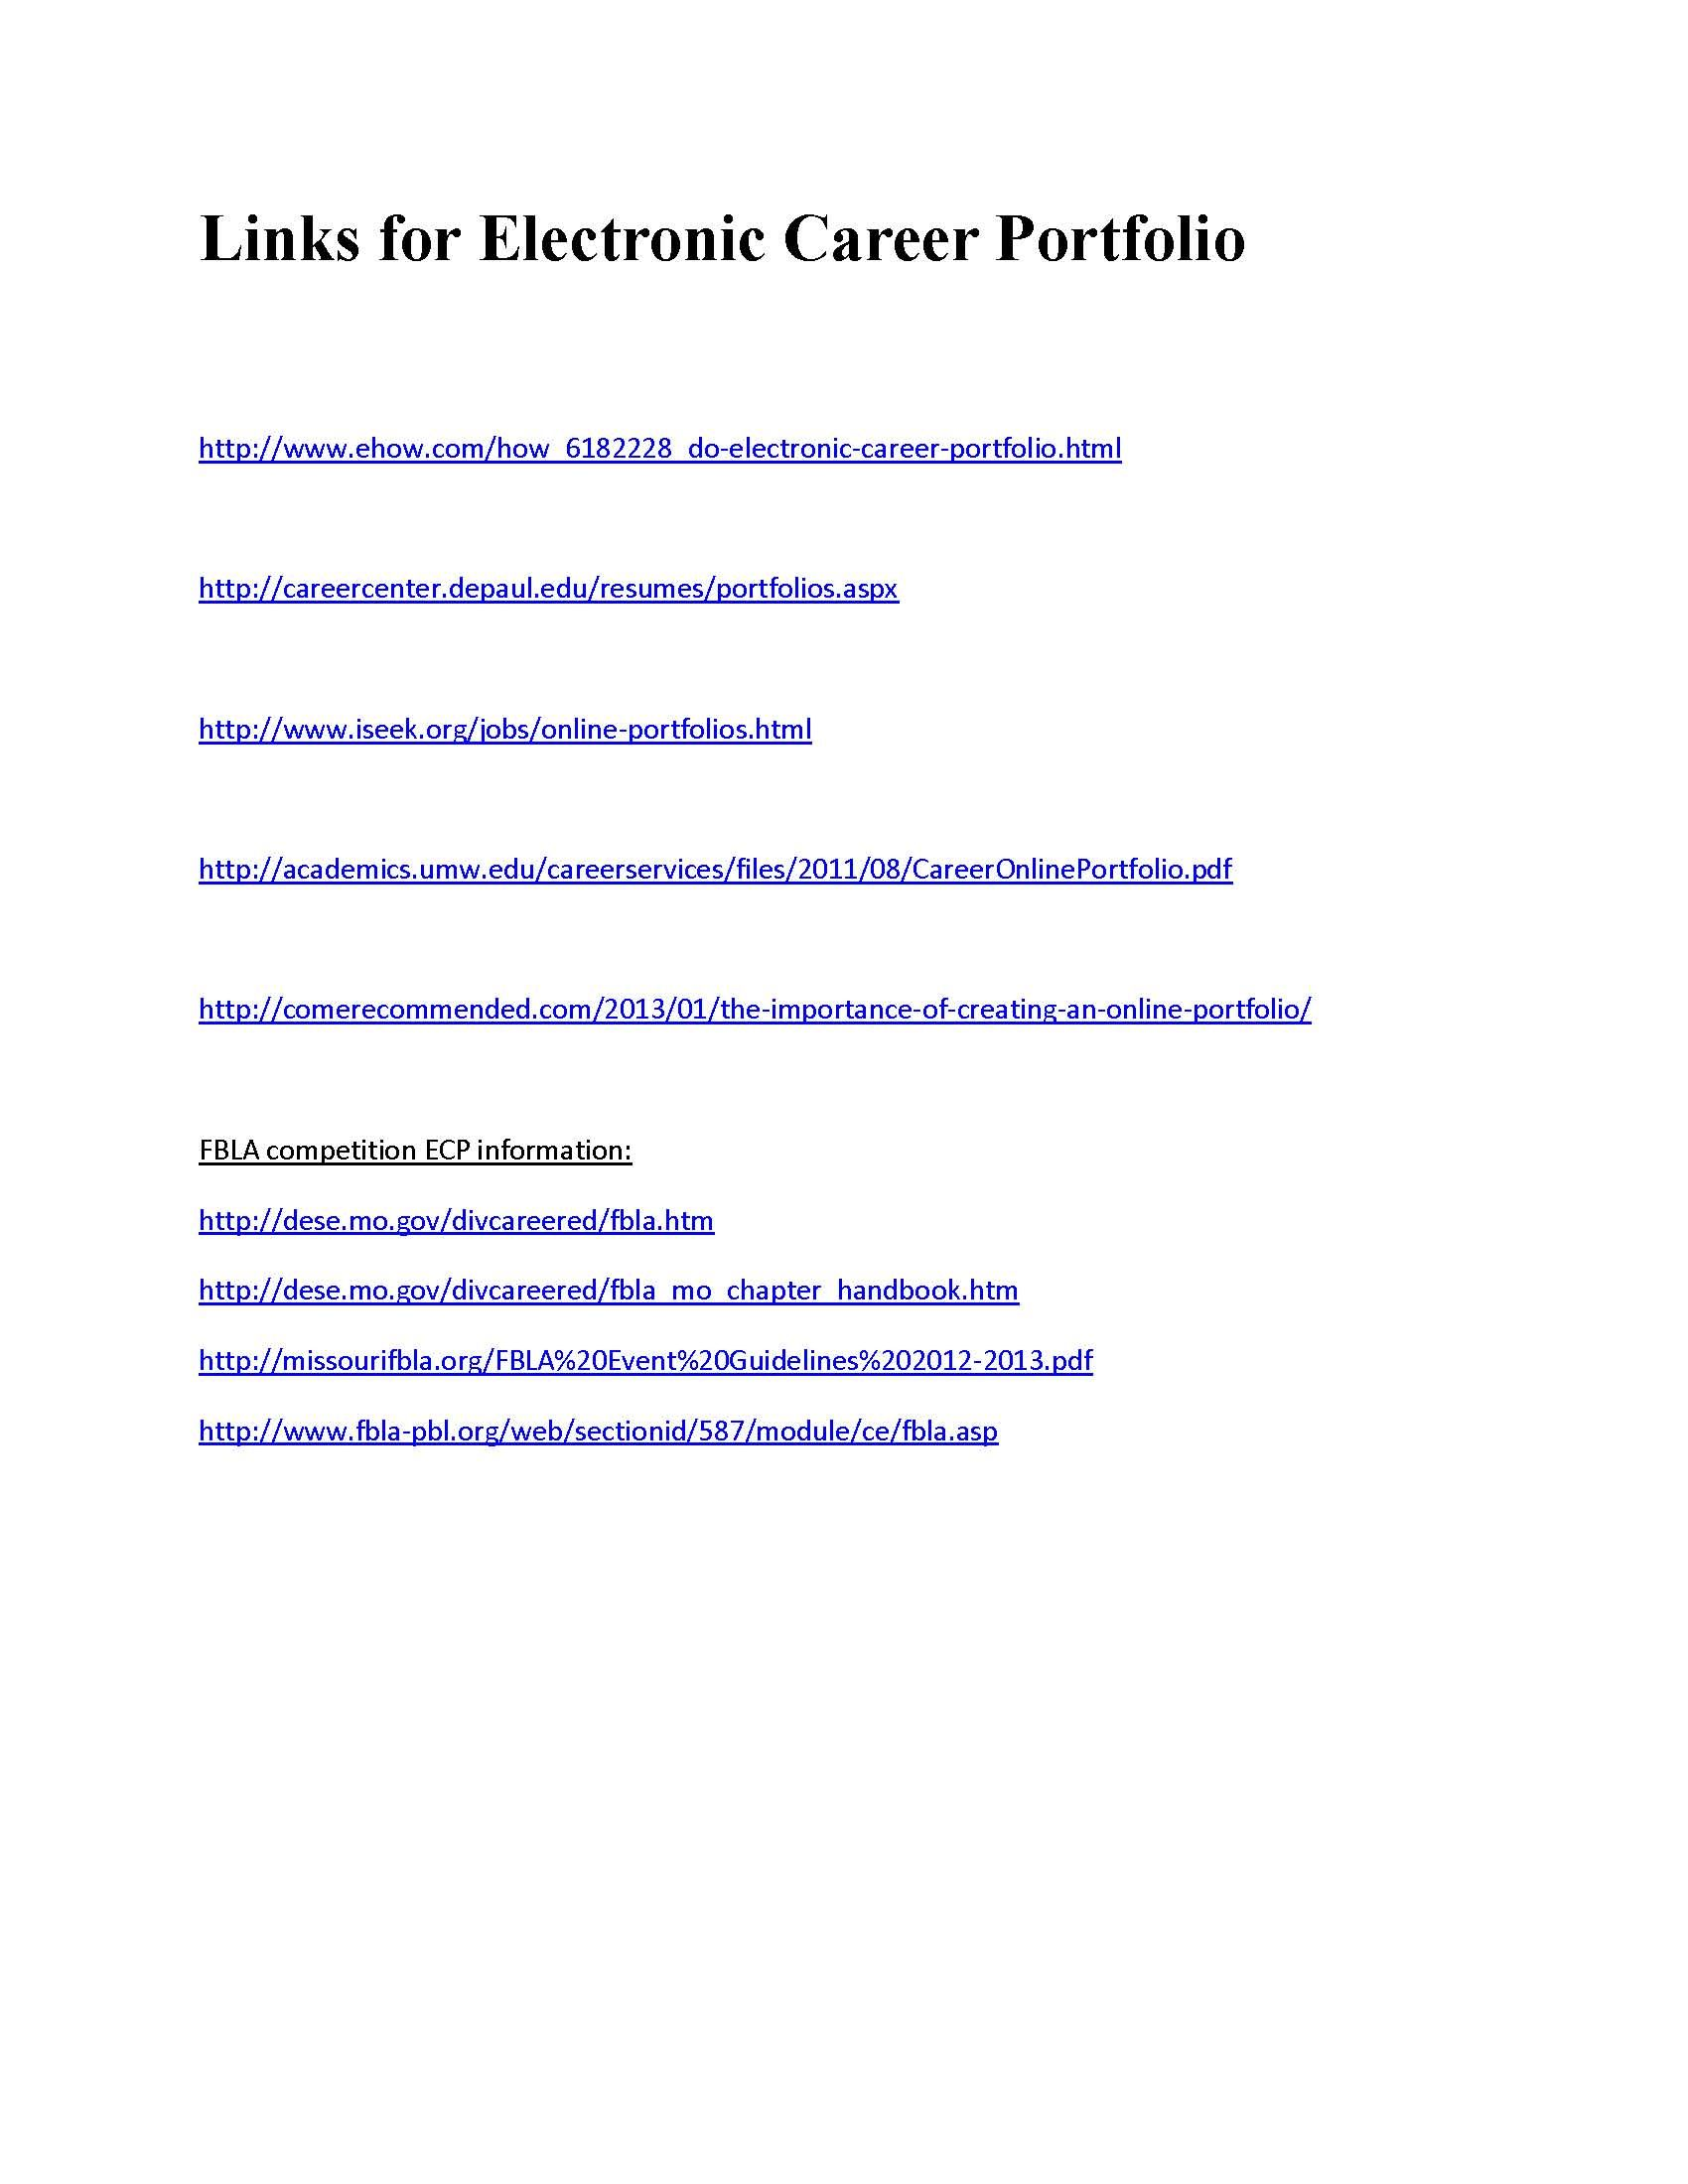 follow up letter after resume sample follow up letter after links to help you create an electronic career portfolio